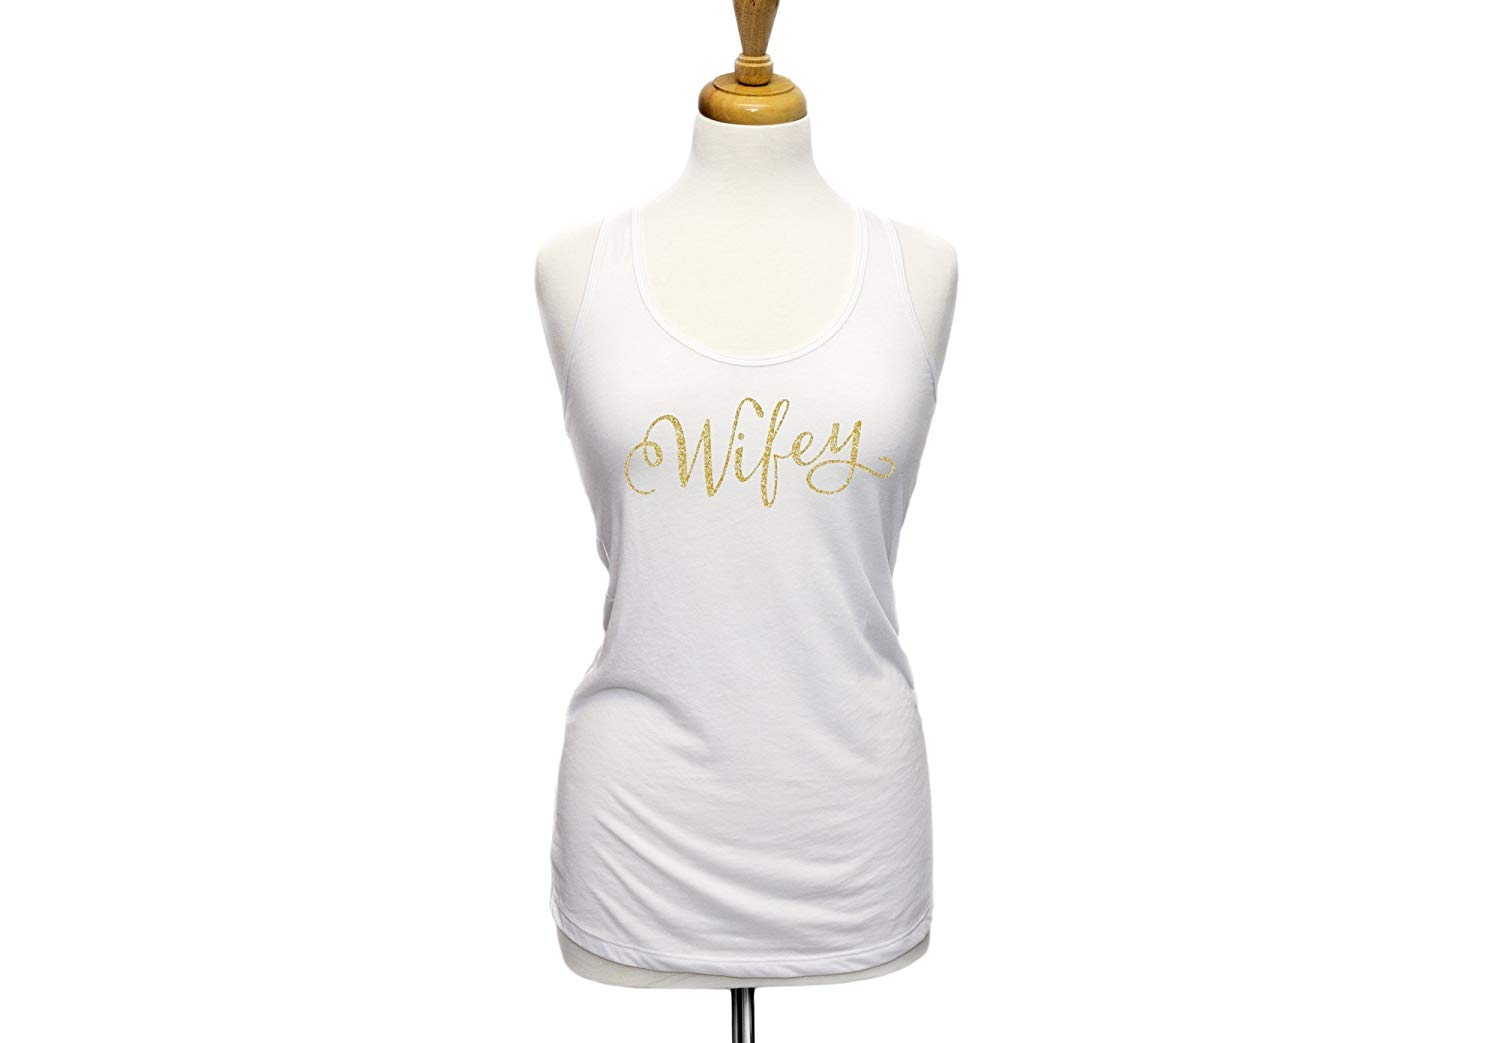 20c40fd730e03 Get Quotations · Wifey Tank Top in GLITTER Tank Top for Wedding or Gift for  Bride